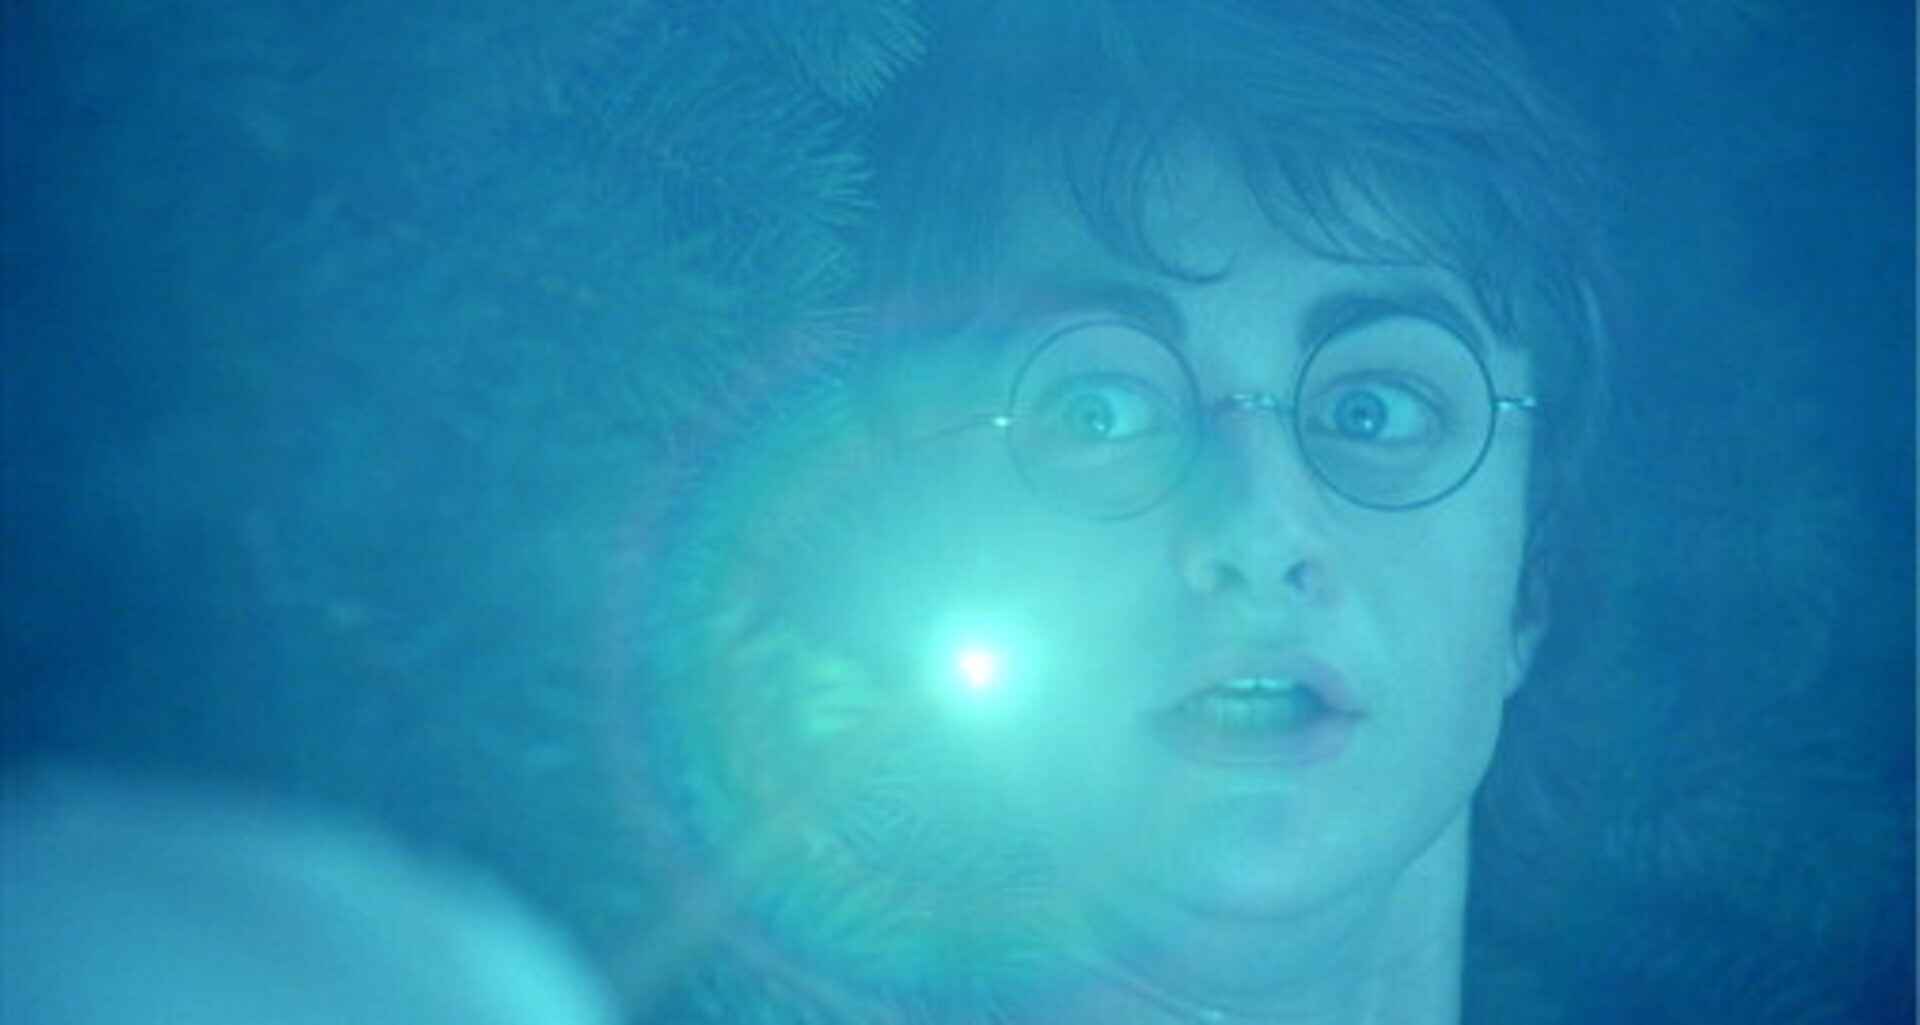 Harry Potter and the Goblet of Fire - Image 22